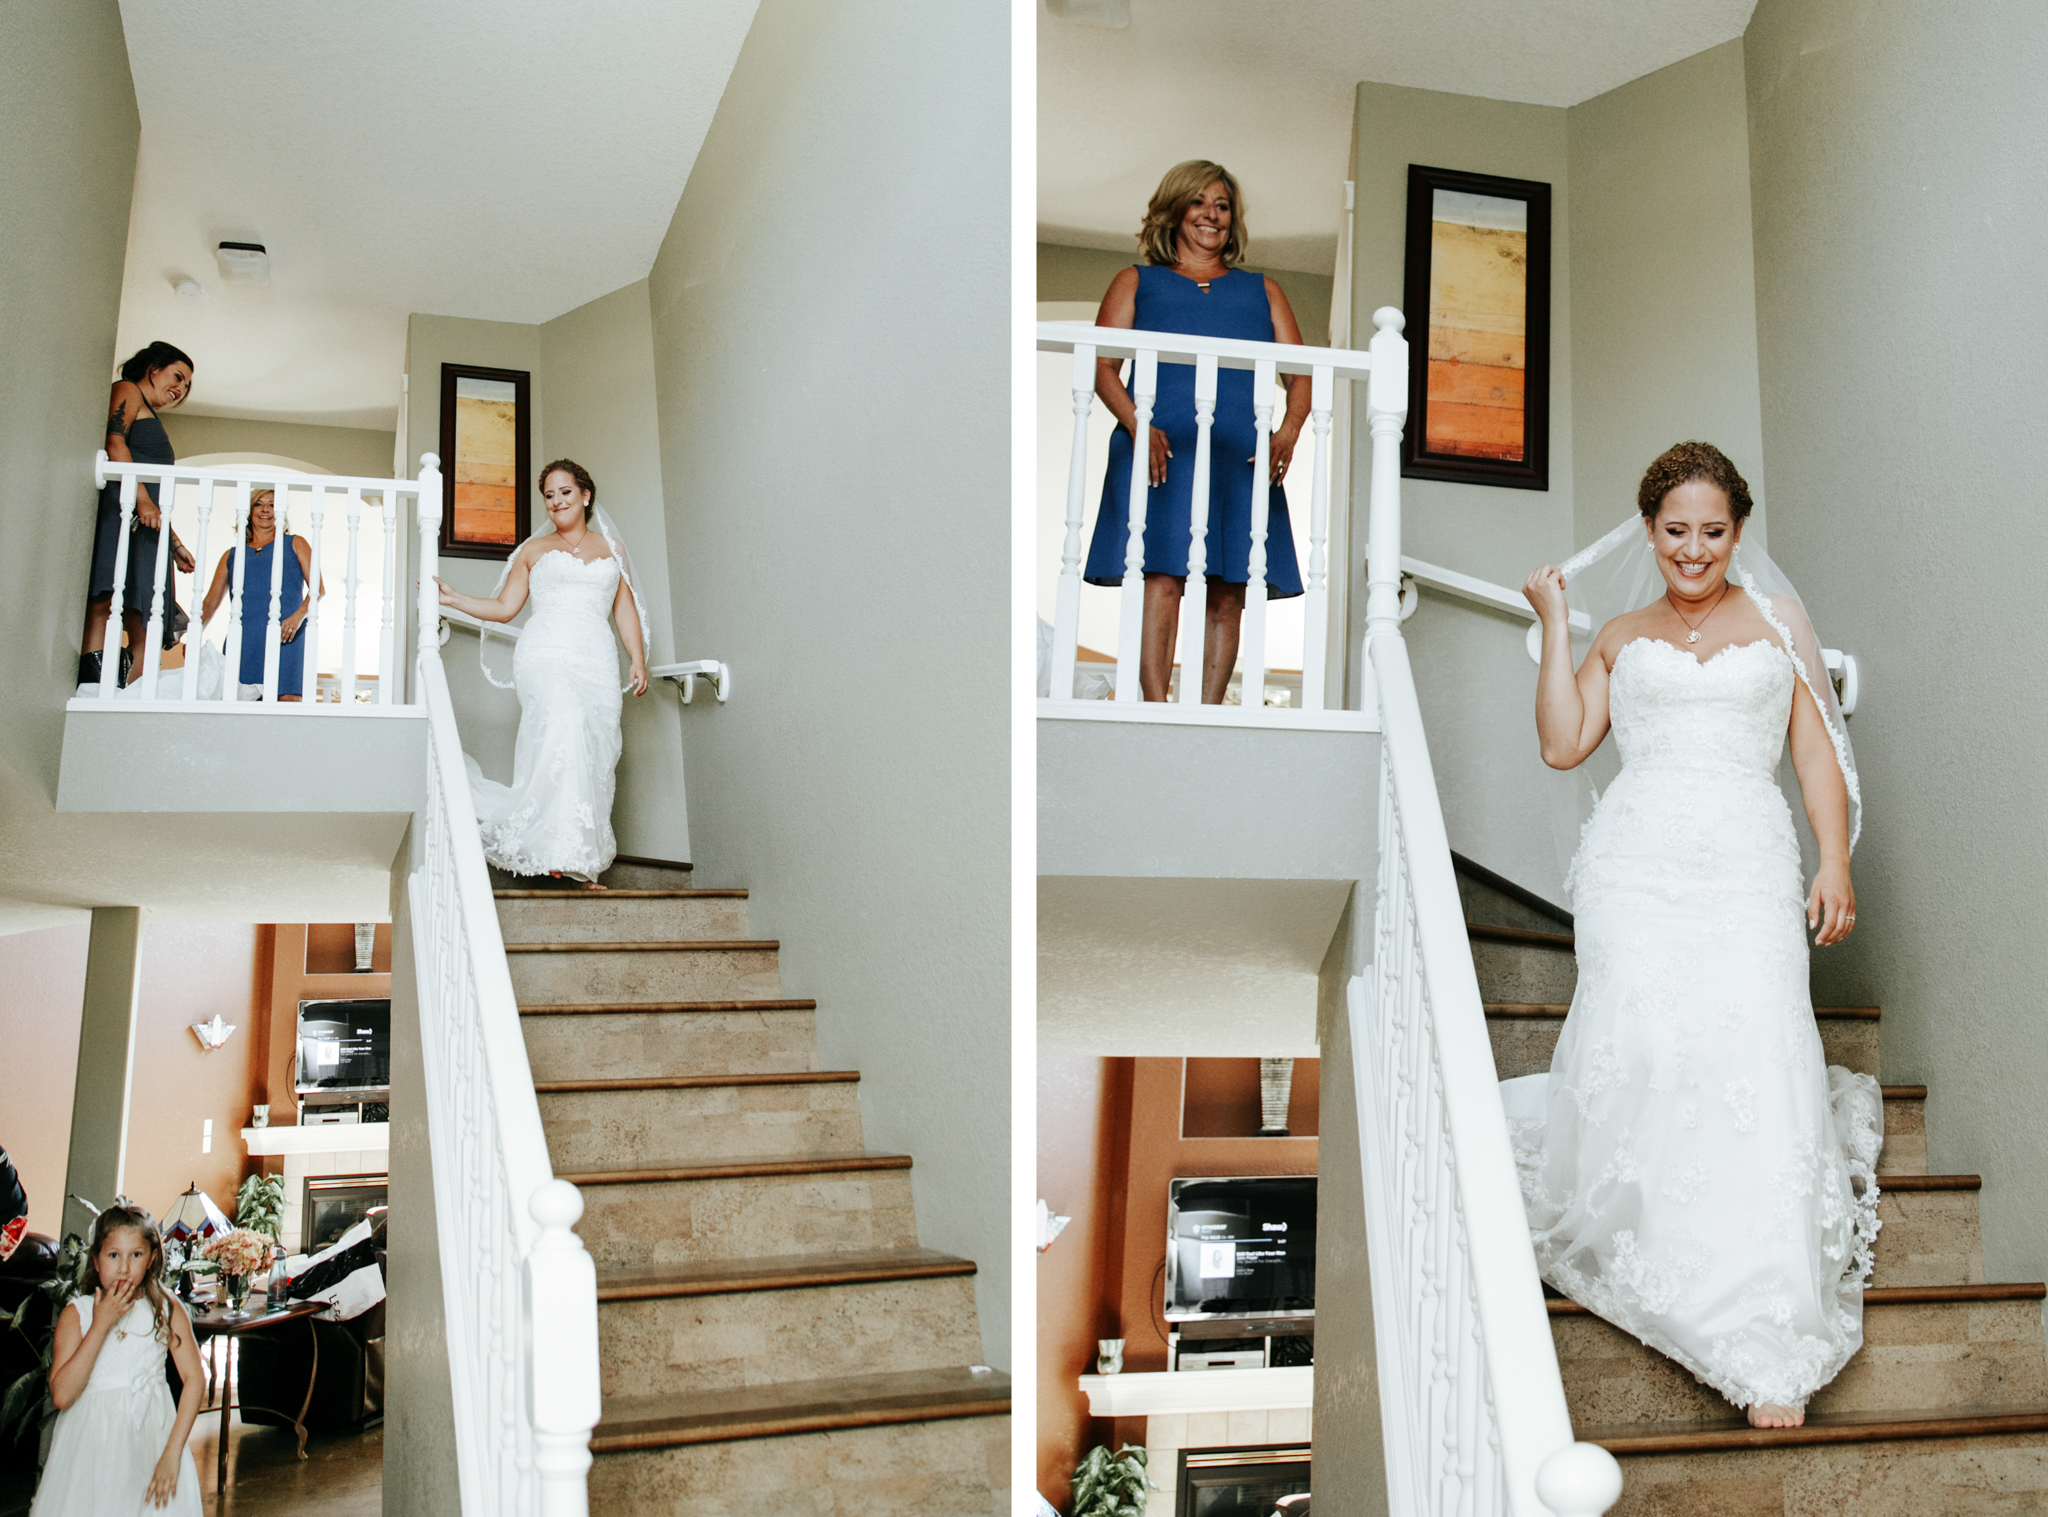 lethbridge-wedding-photographer-love-and-be-loved-photography-trent-danielle-galt-reception-picture-image-photo-74.jpg